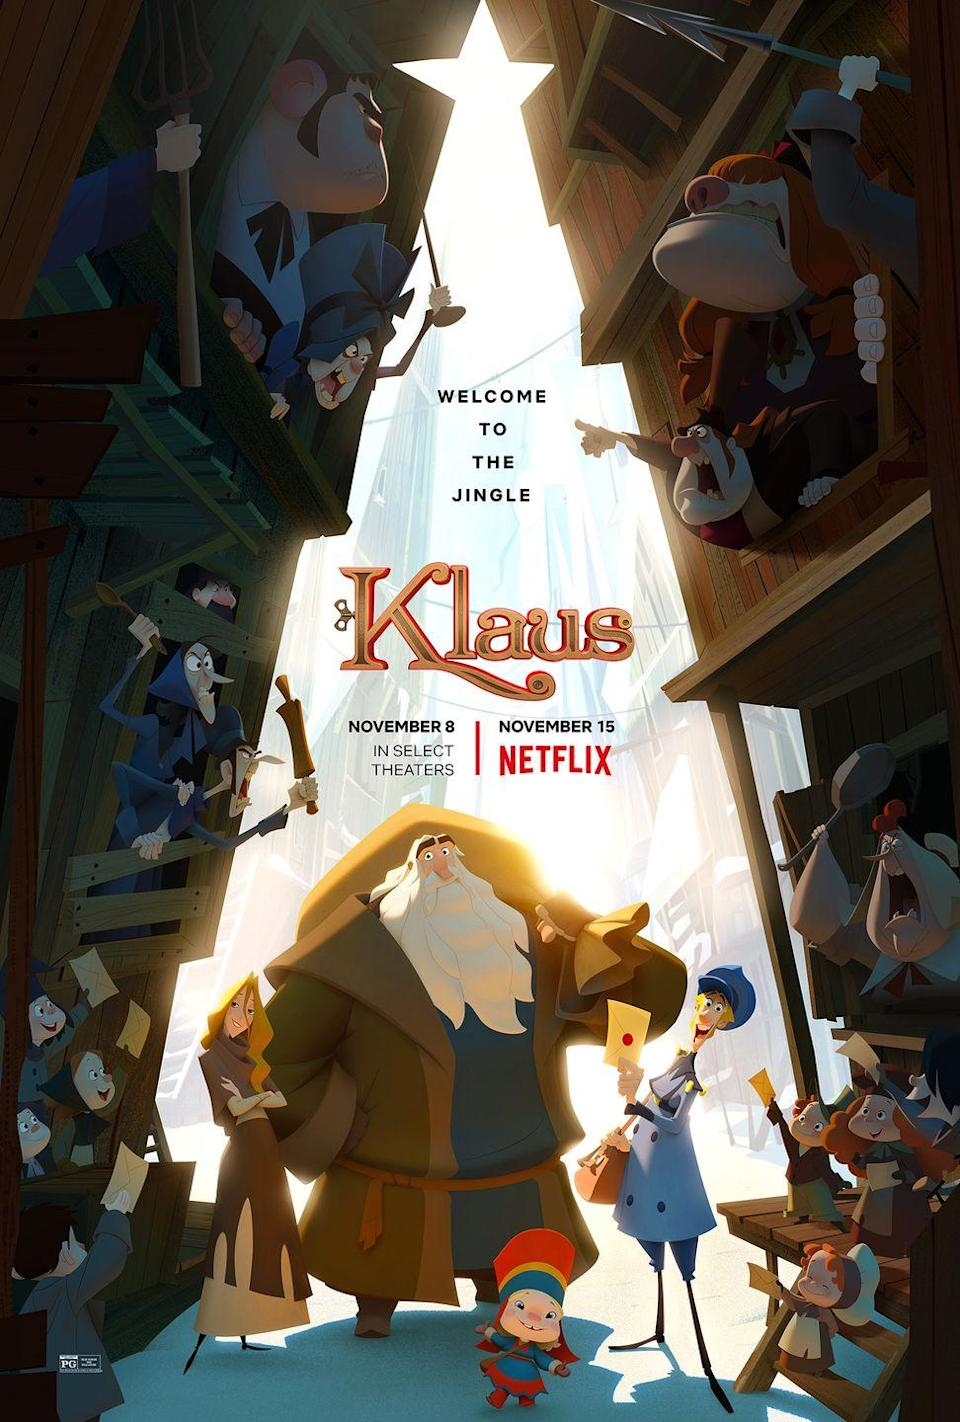 """<p>This Netflix original about a postman who befriends a reclusive toymaker makes for a great family Christmas film — especially with the beautiful animation that will leave you <em>really</em> feeling the holiday magic.  </p><p><a class=""""link rapid-noclick-resp"""" href=""""https://www.netflix.com/title/80183187"""" rel=""""nofollow noopener"""" target=""""_blank"""" data-ylk=""""slk:WATCH NOW"""">WATCH NOW</a> </p>"""